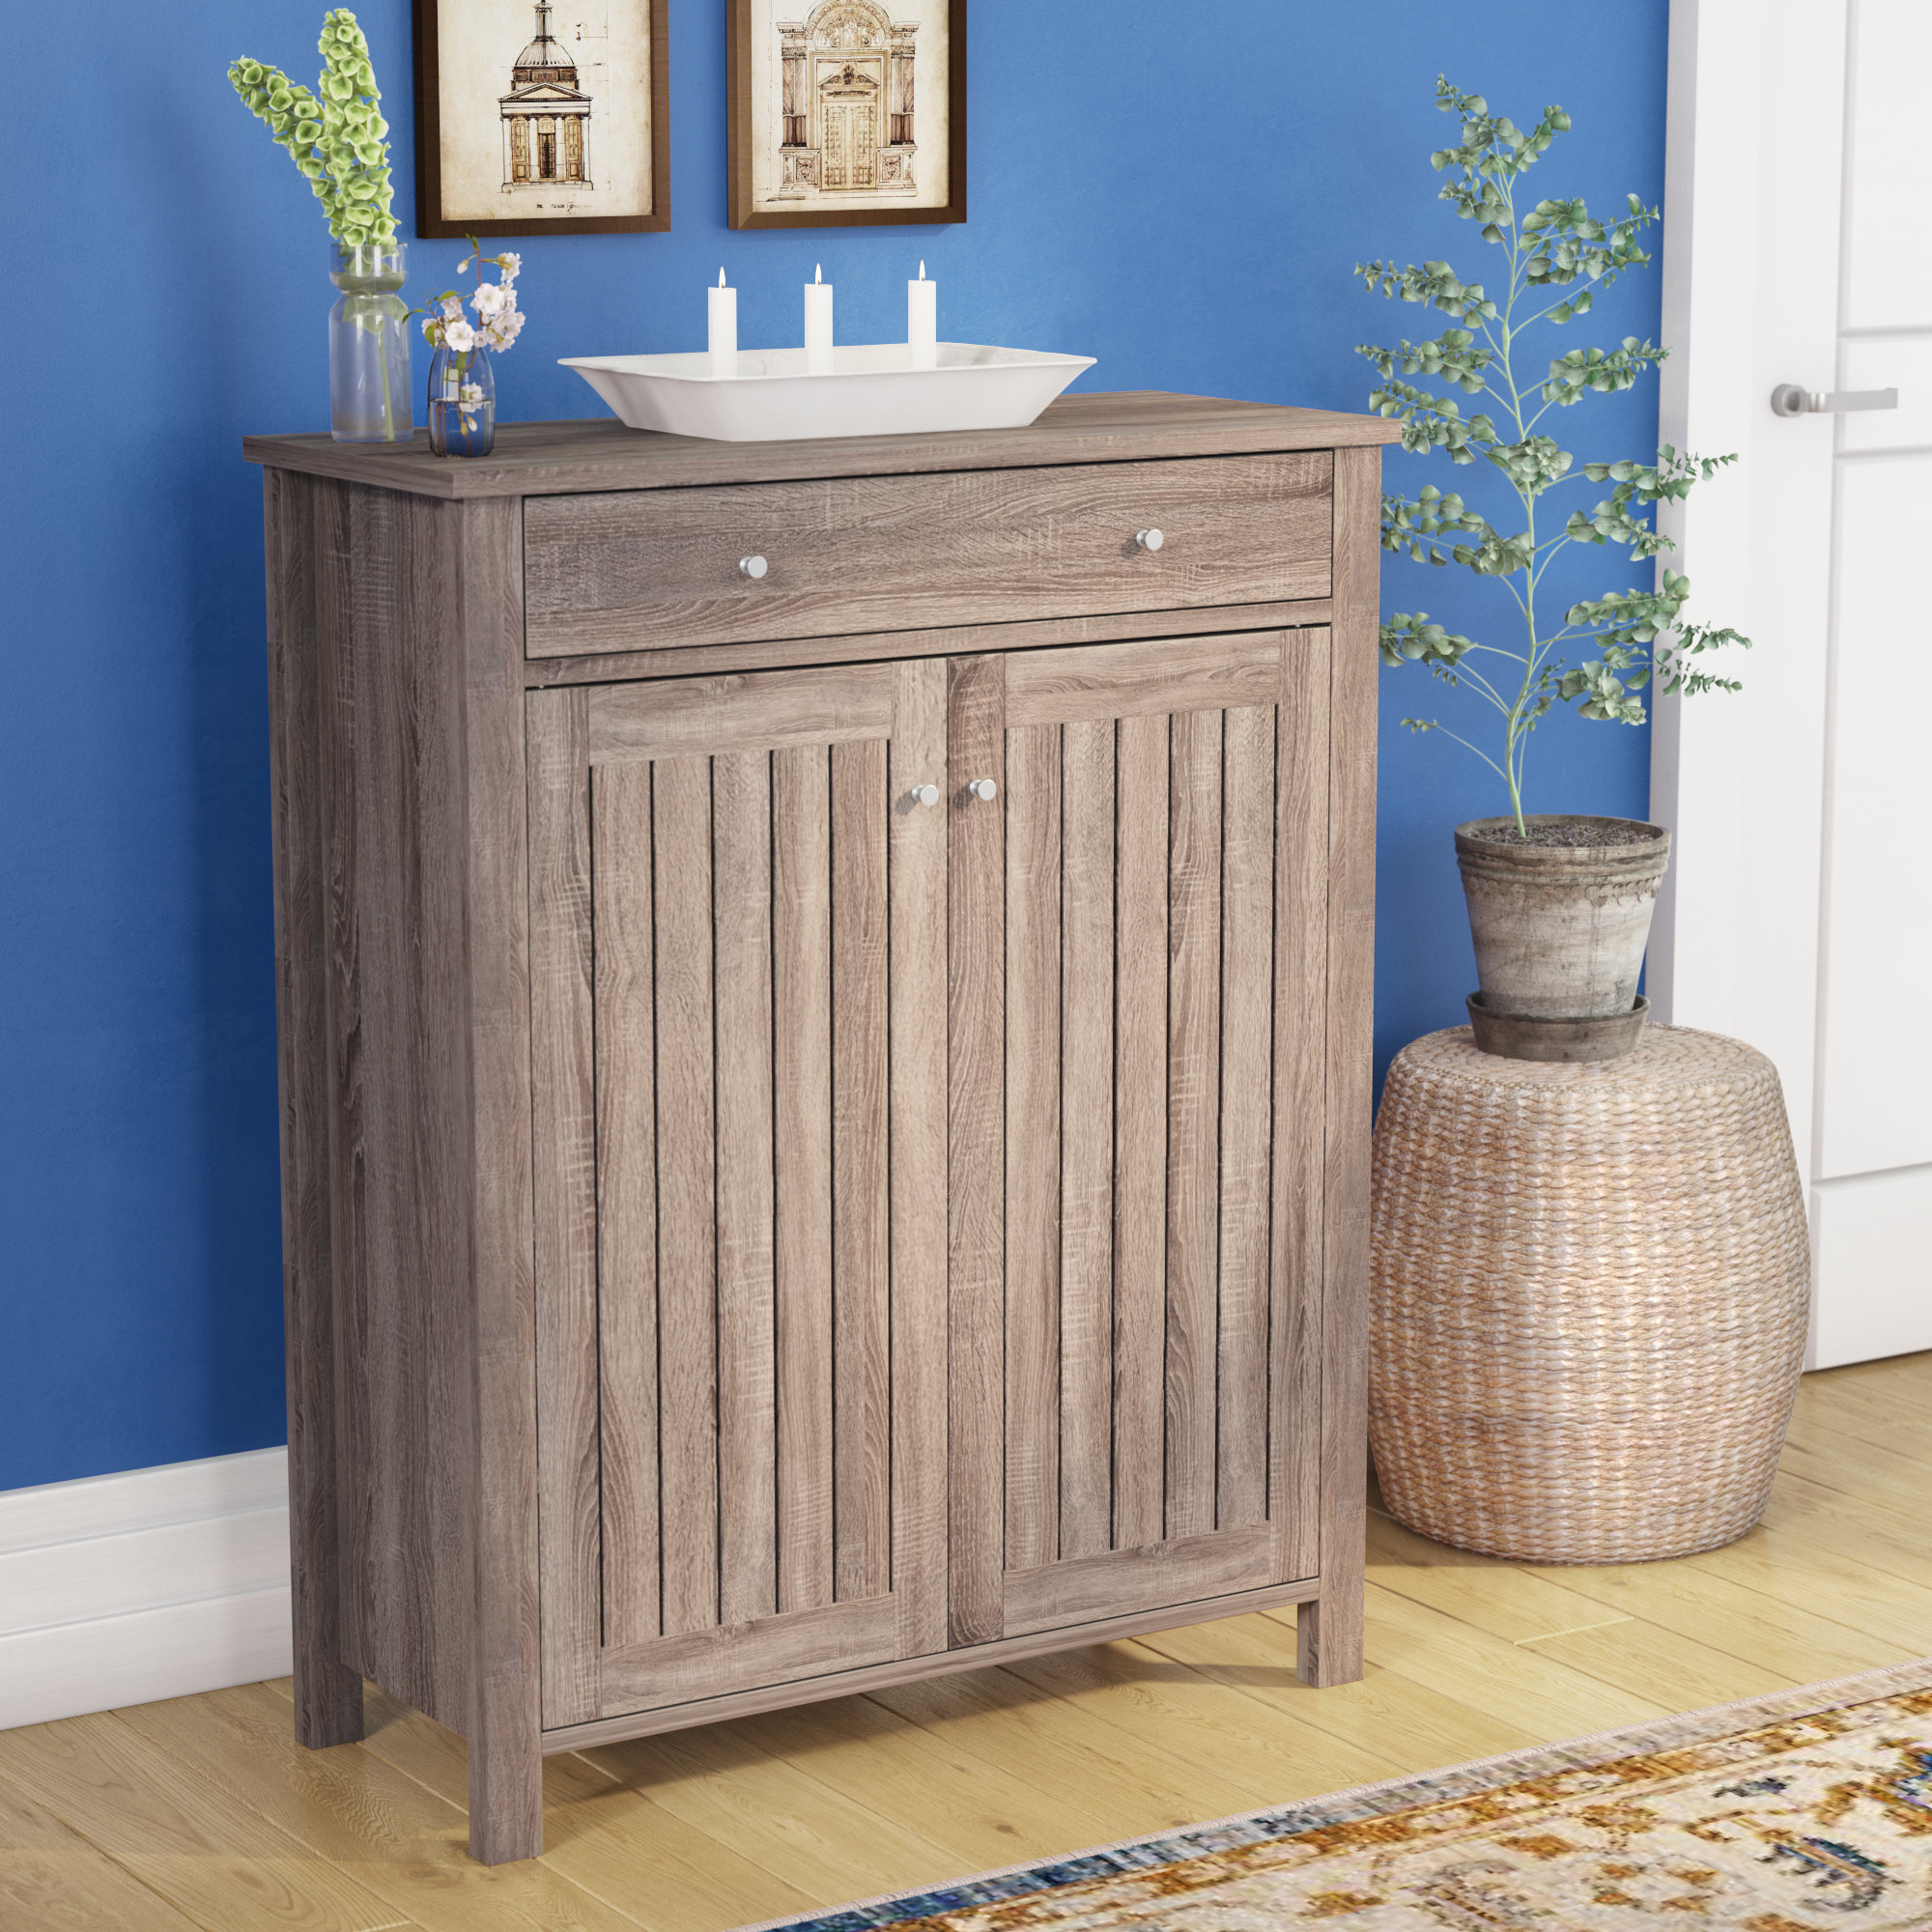 crawfordsland door storage accent cabinet reviews birch lane furniture dale tiffany lighting diy wood coffee table dining room buffet small entryway with drawer tall skinny